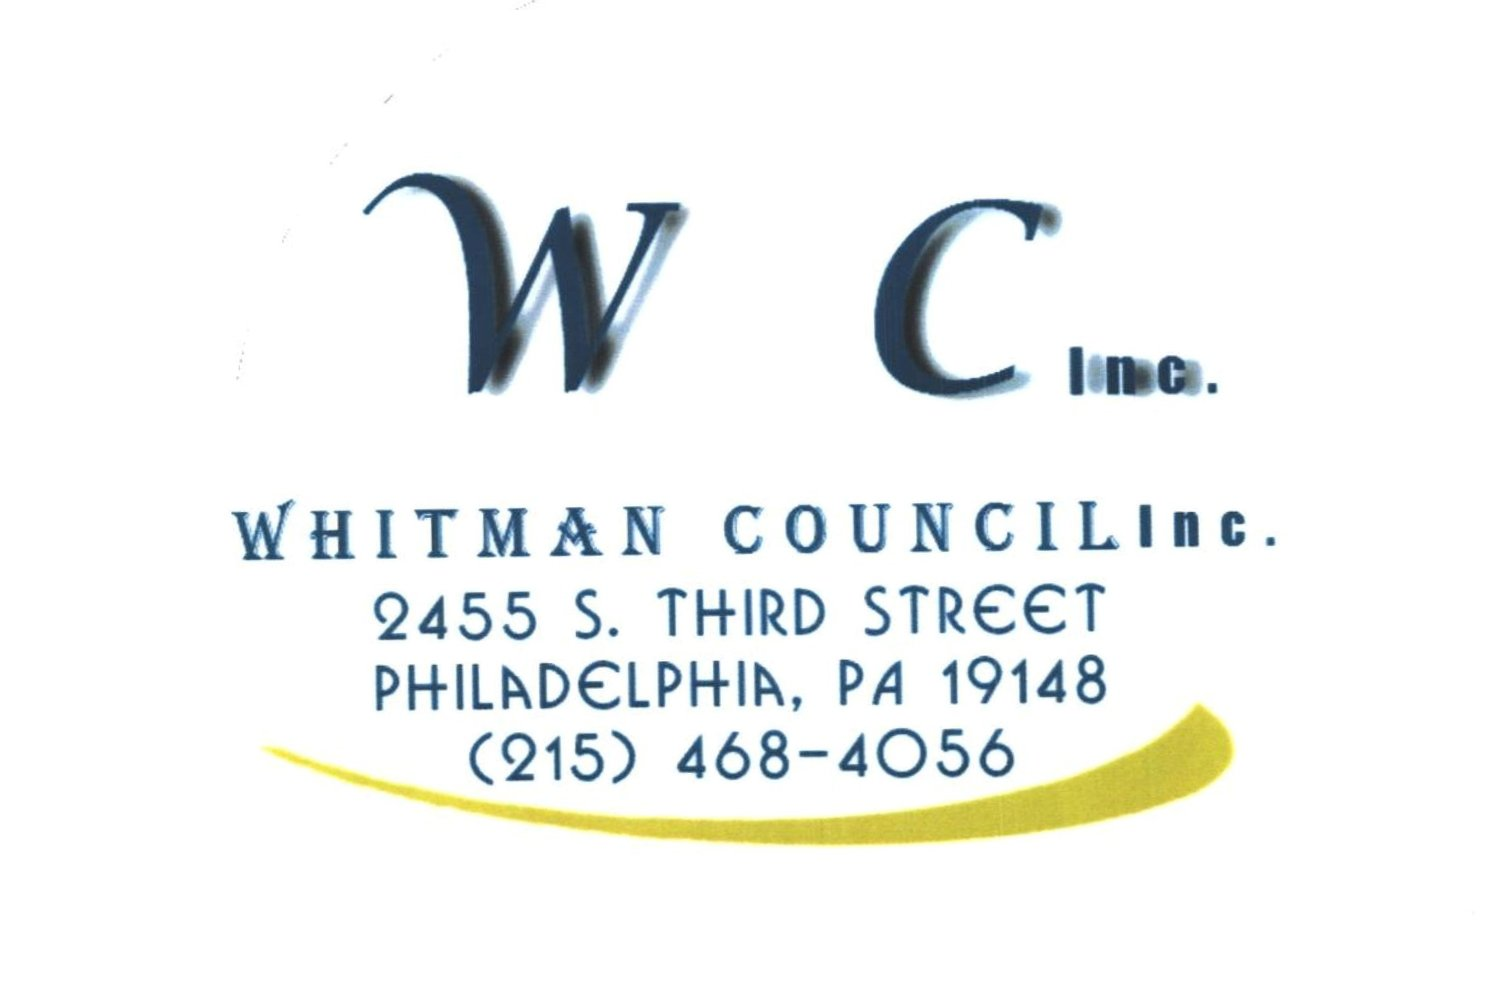 Whitman Council Inc